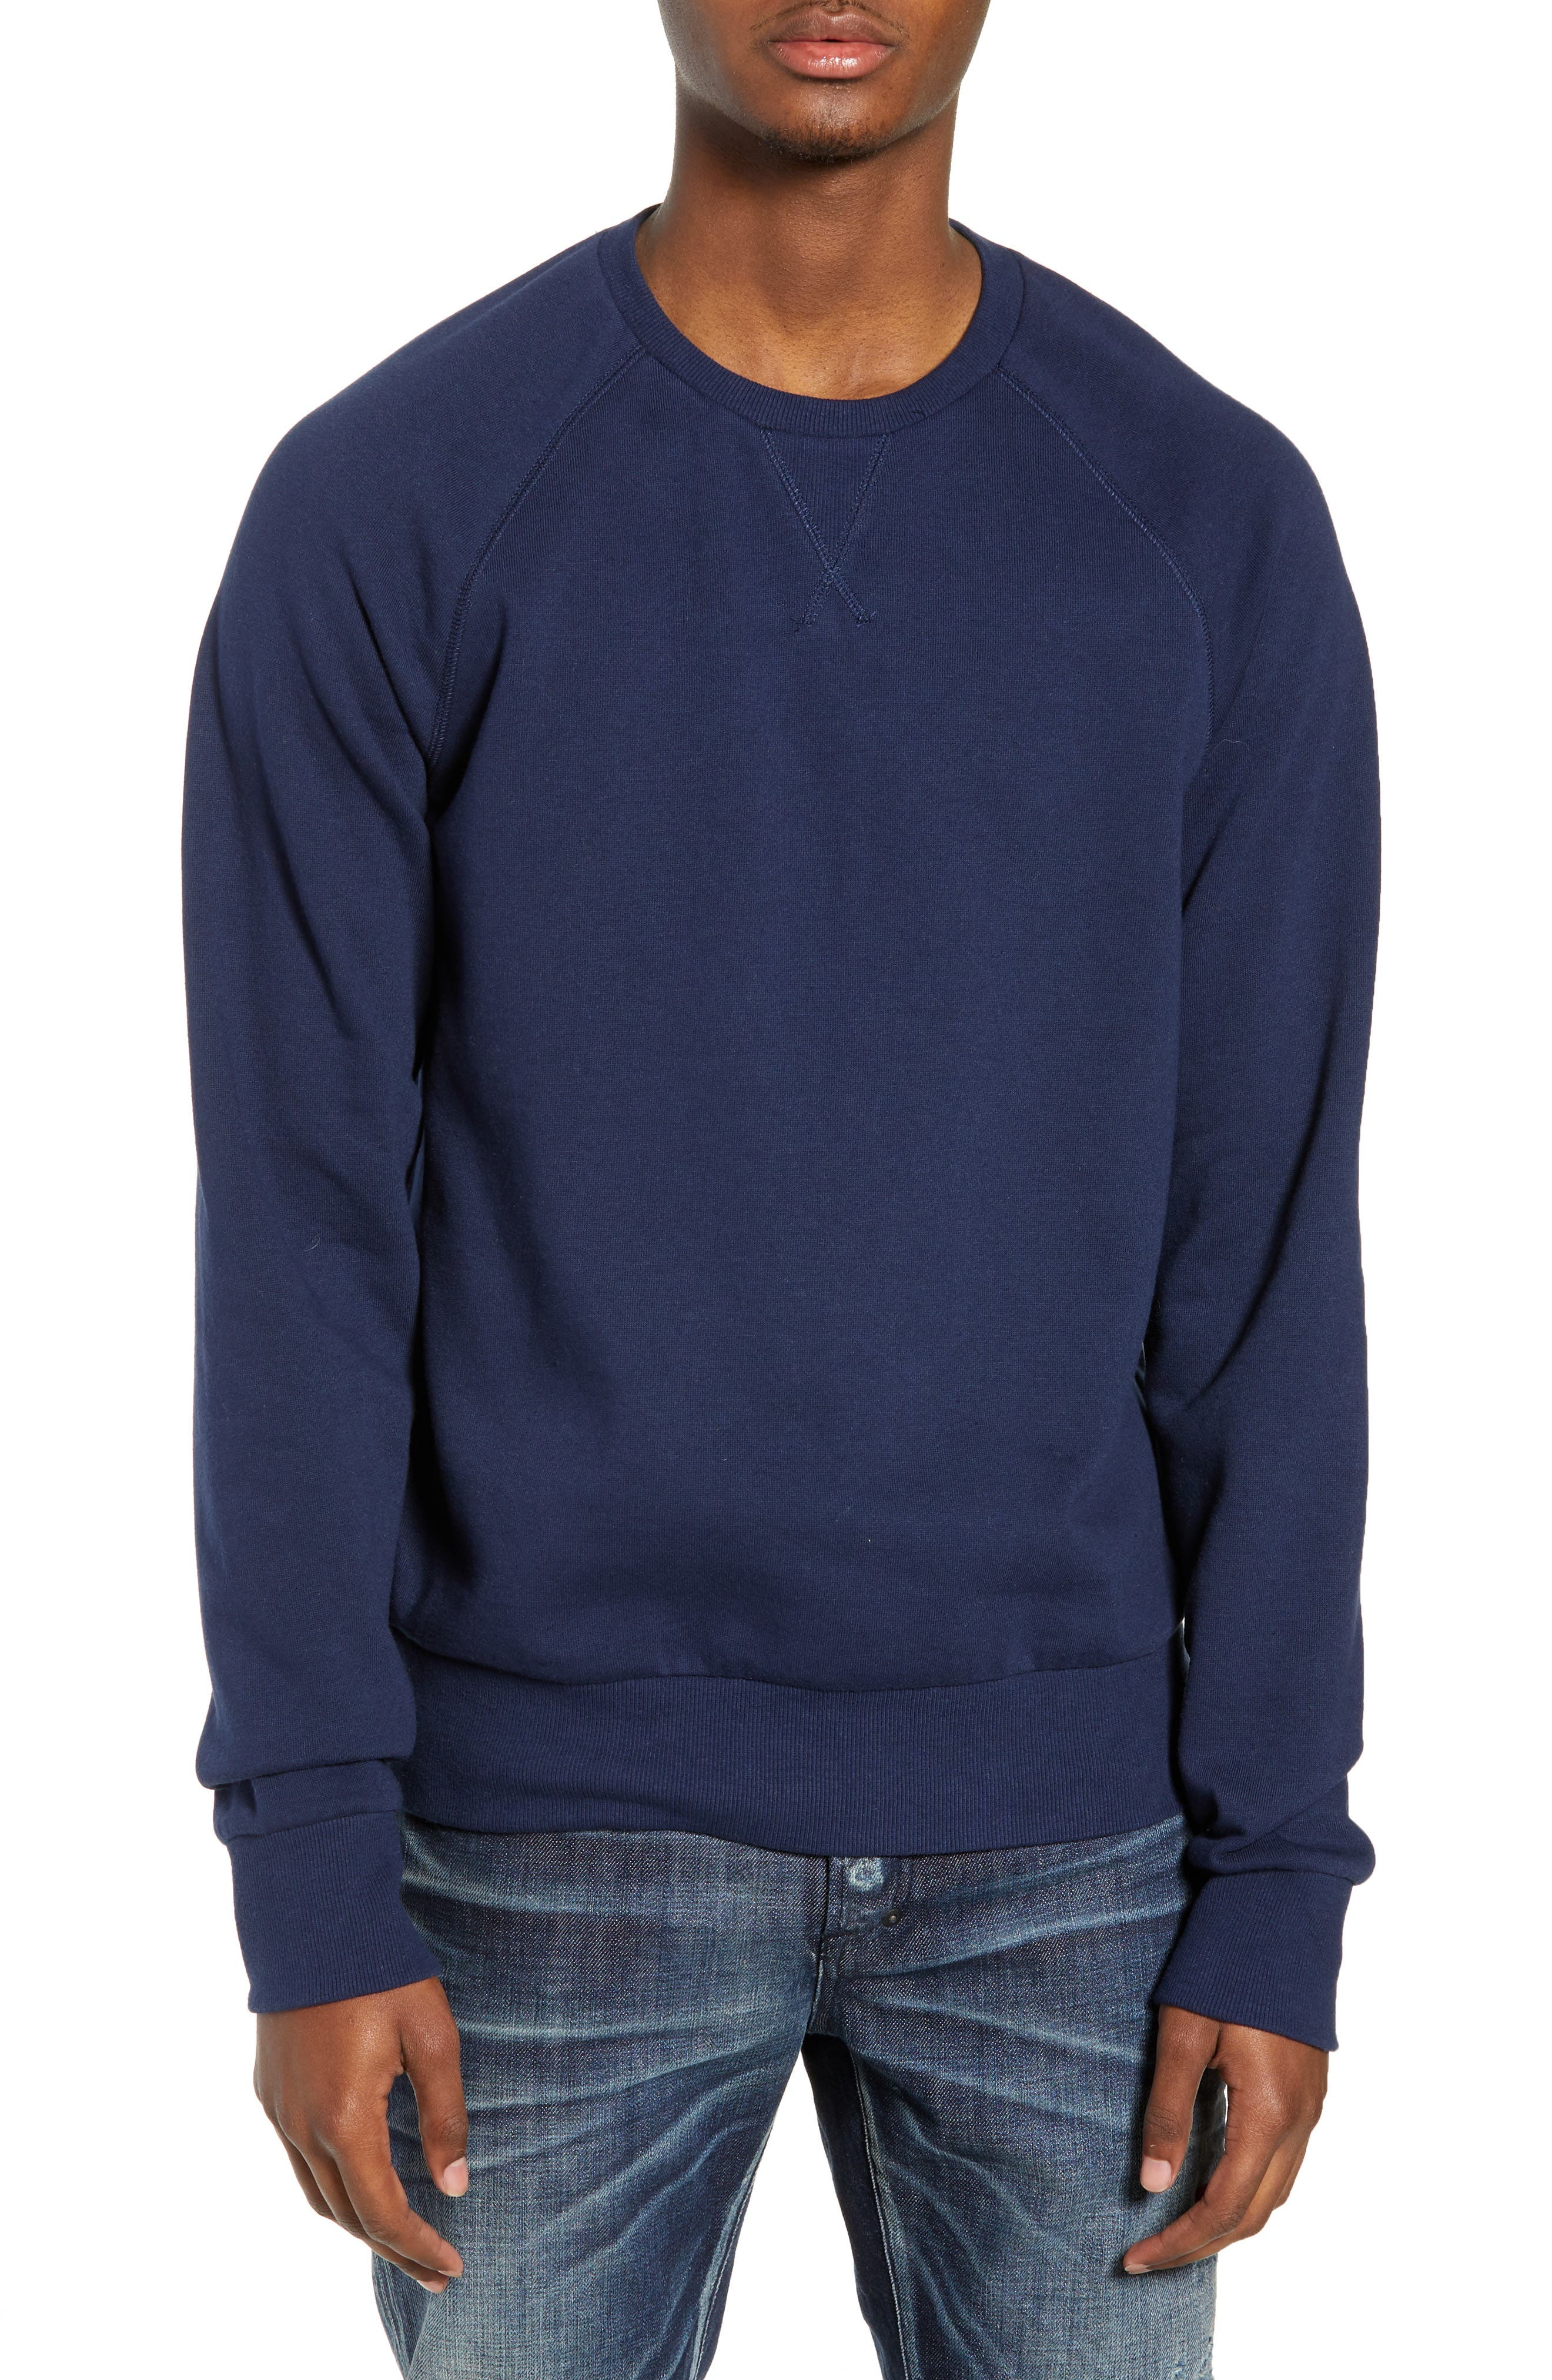 THE RAIL,                             Crewneck Sweatshirt,                             Main thumbnail 1, color,                             410